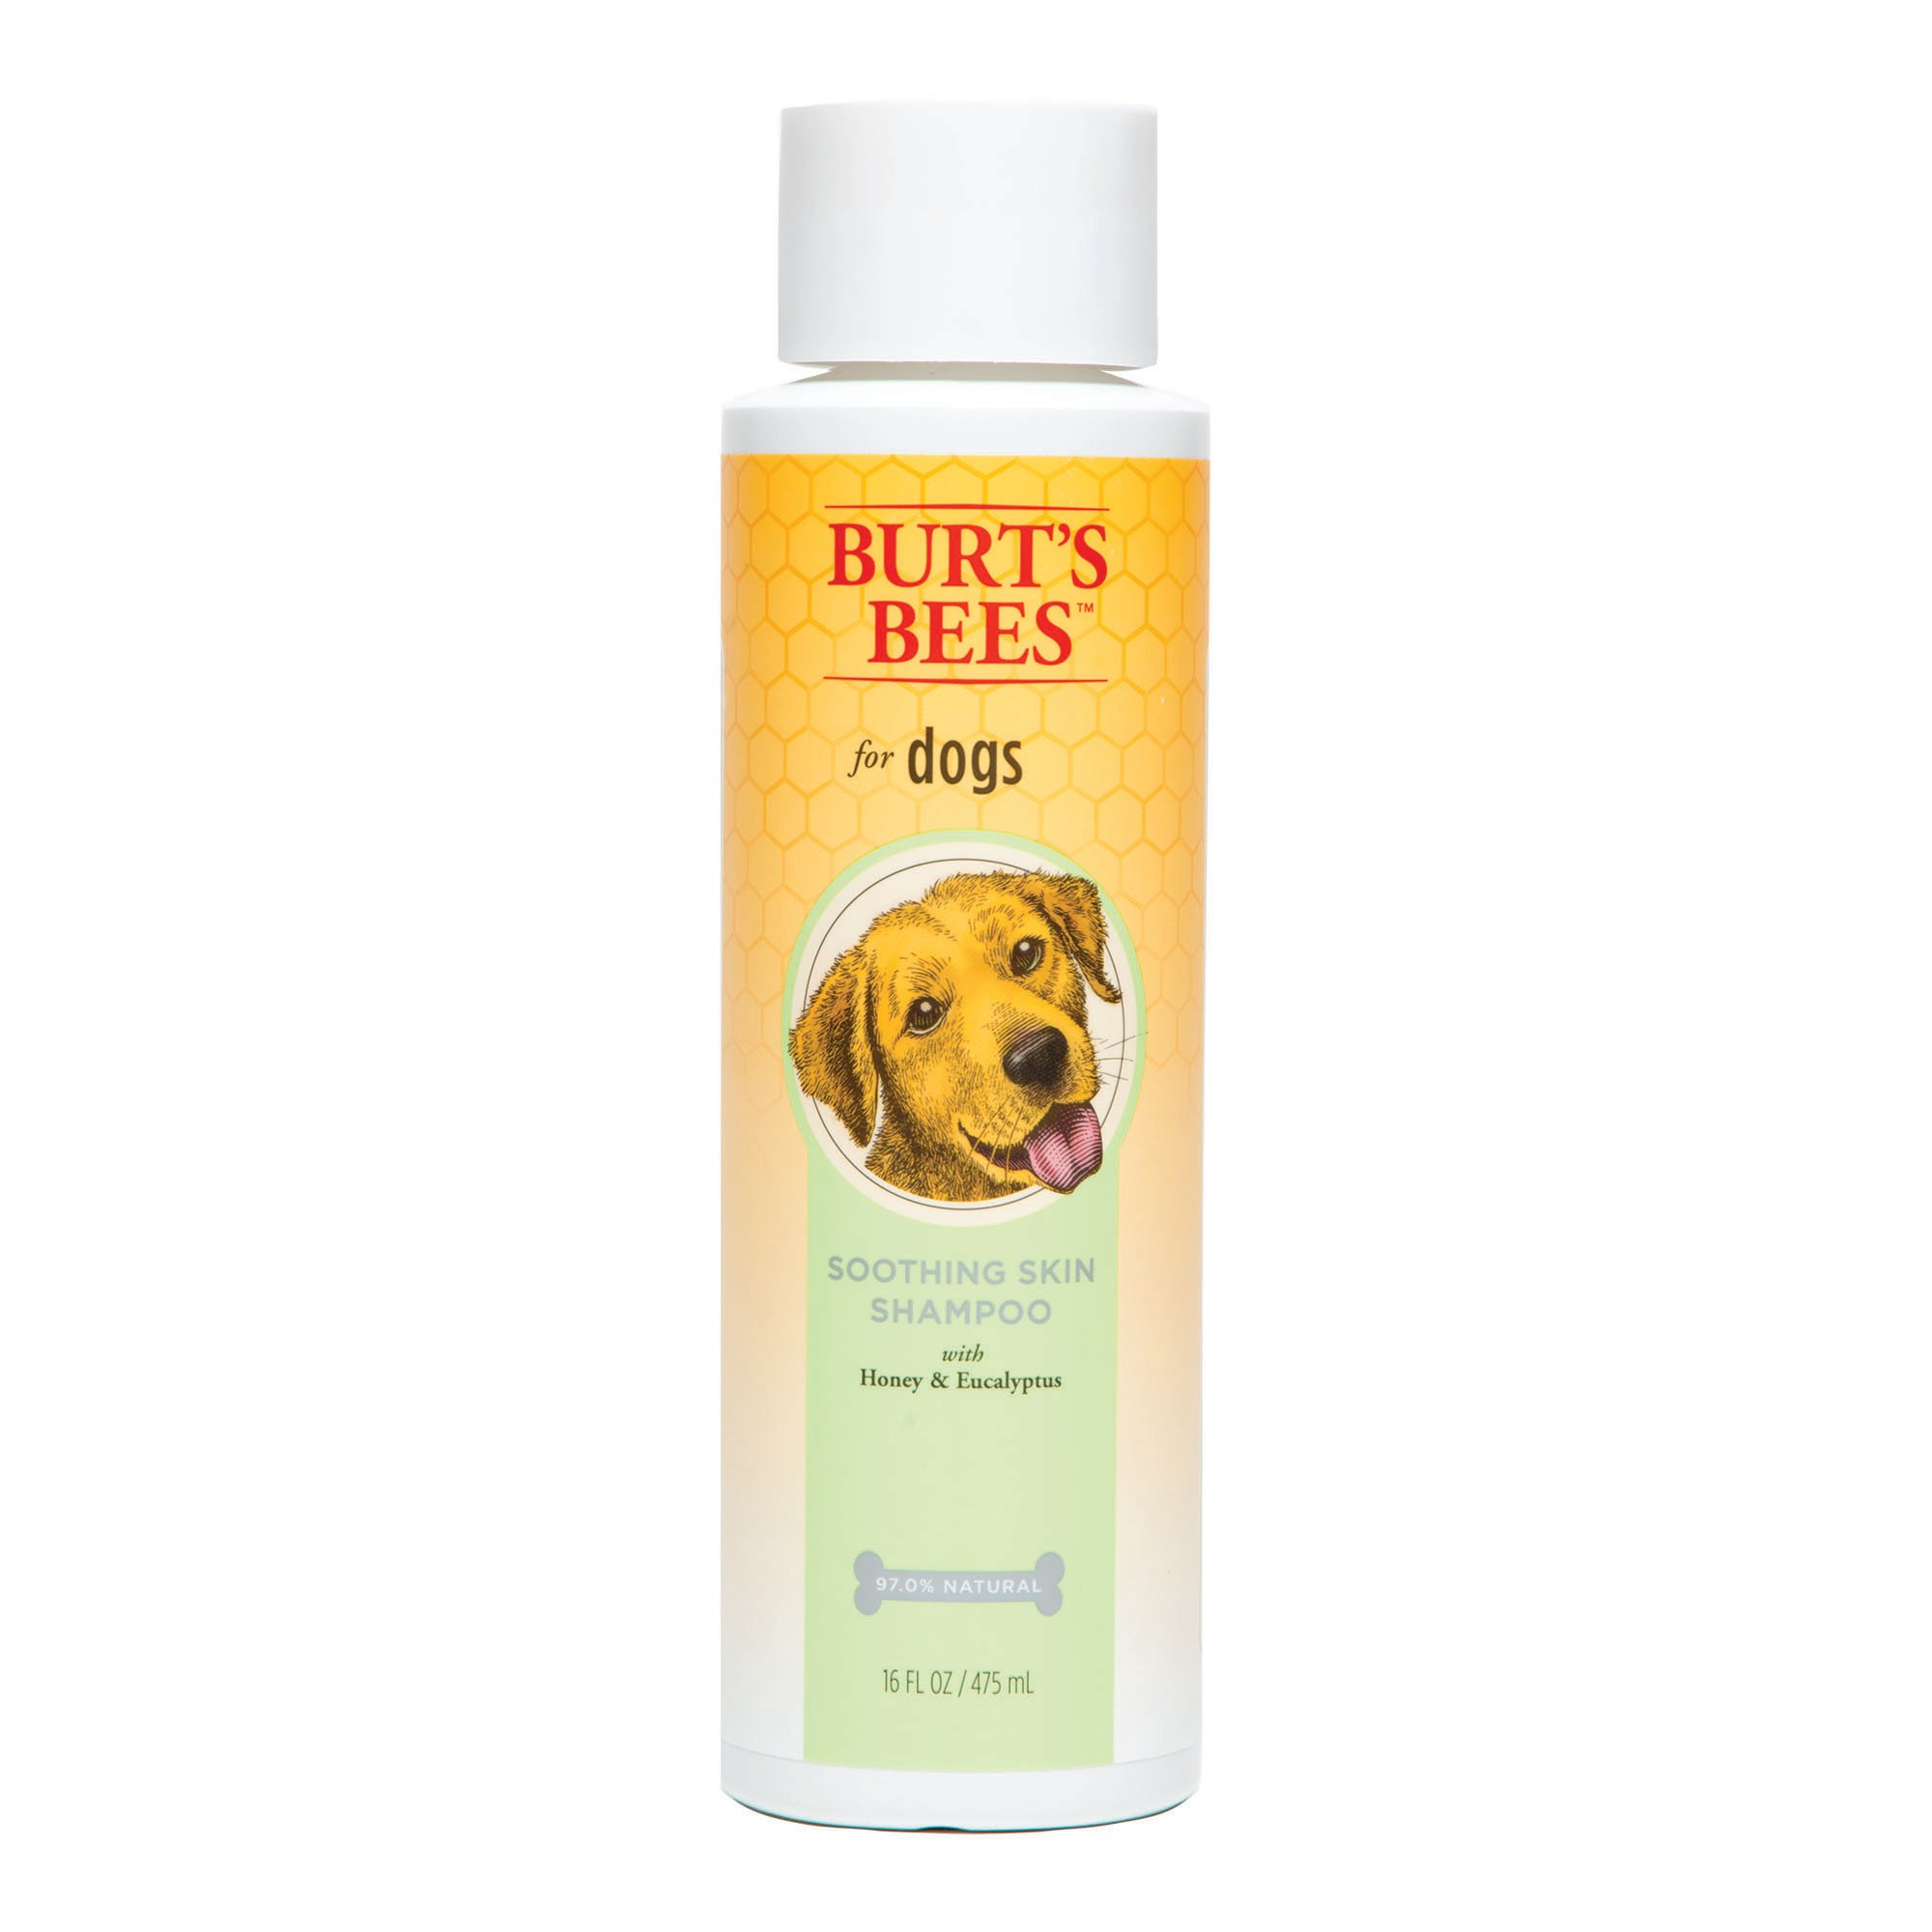 Burt's Bees for Dogs Soothing Skin Shampoo